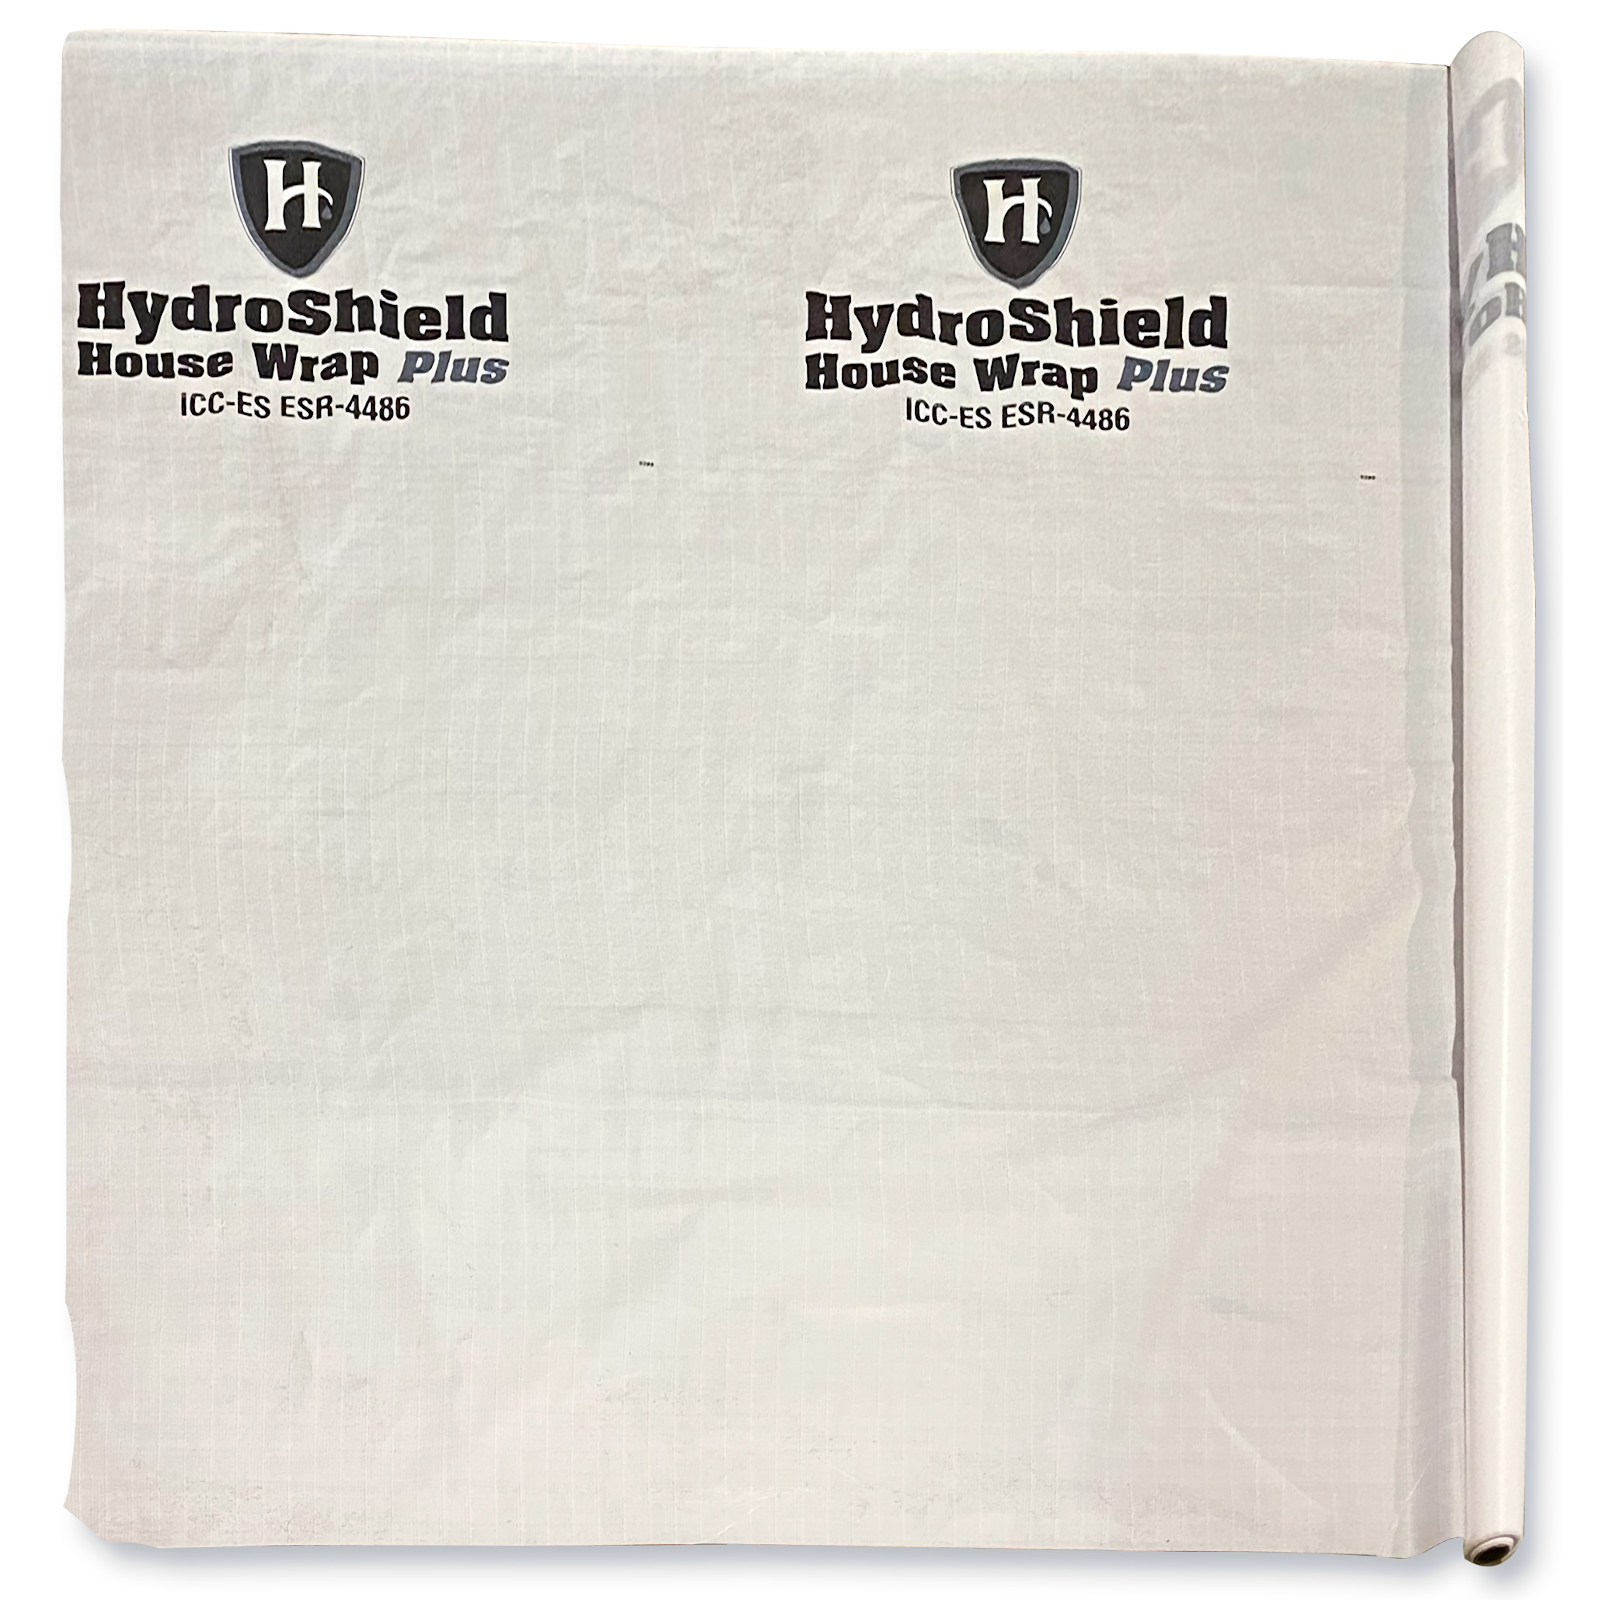 Hydroshield Housewrap Plus